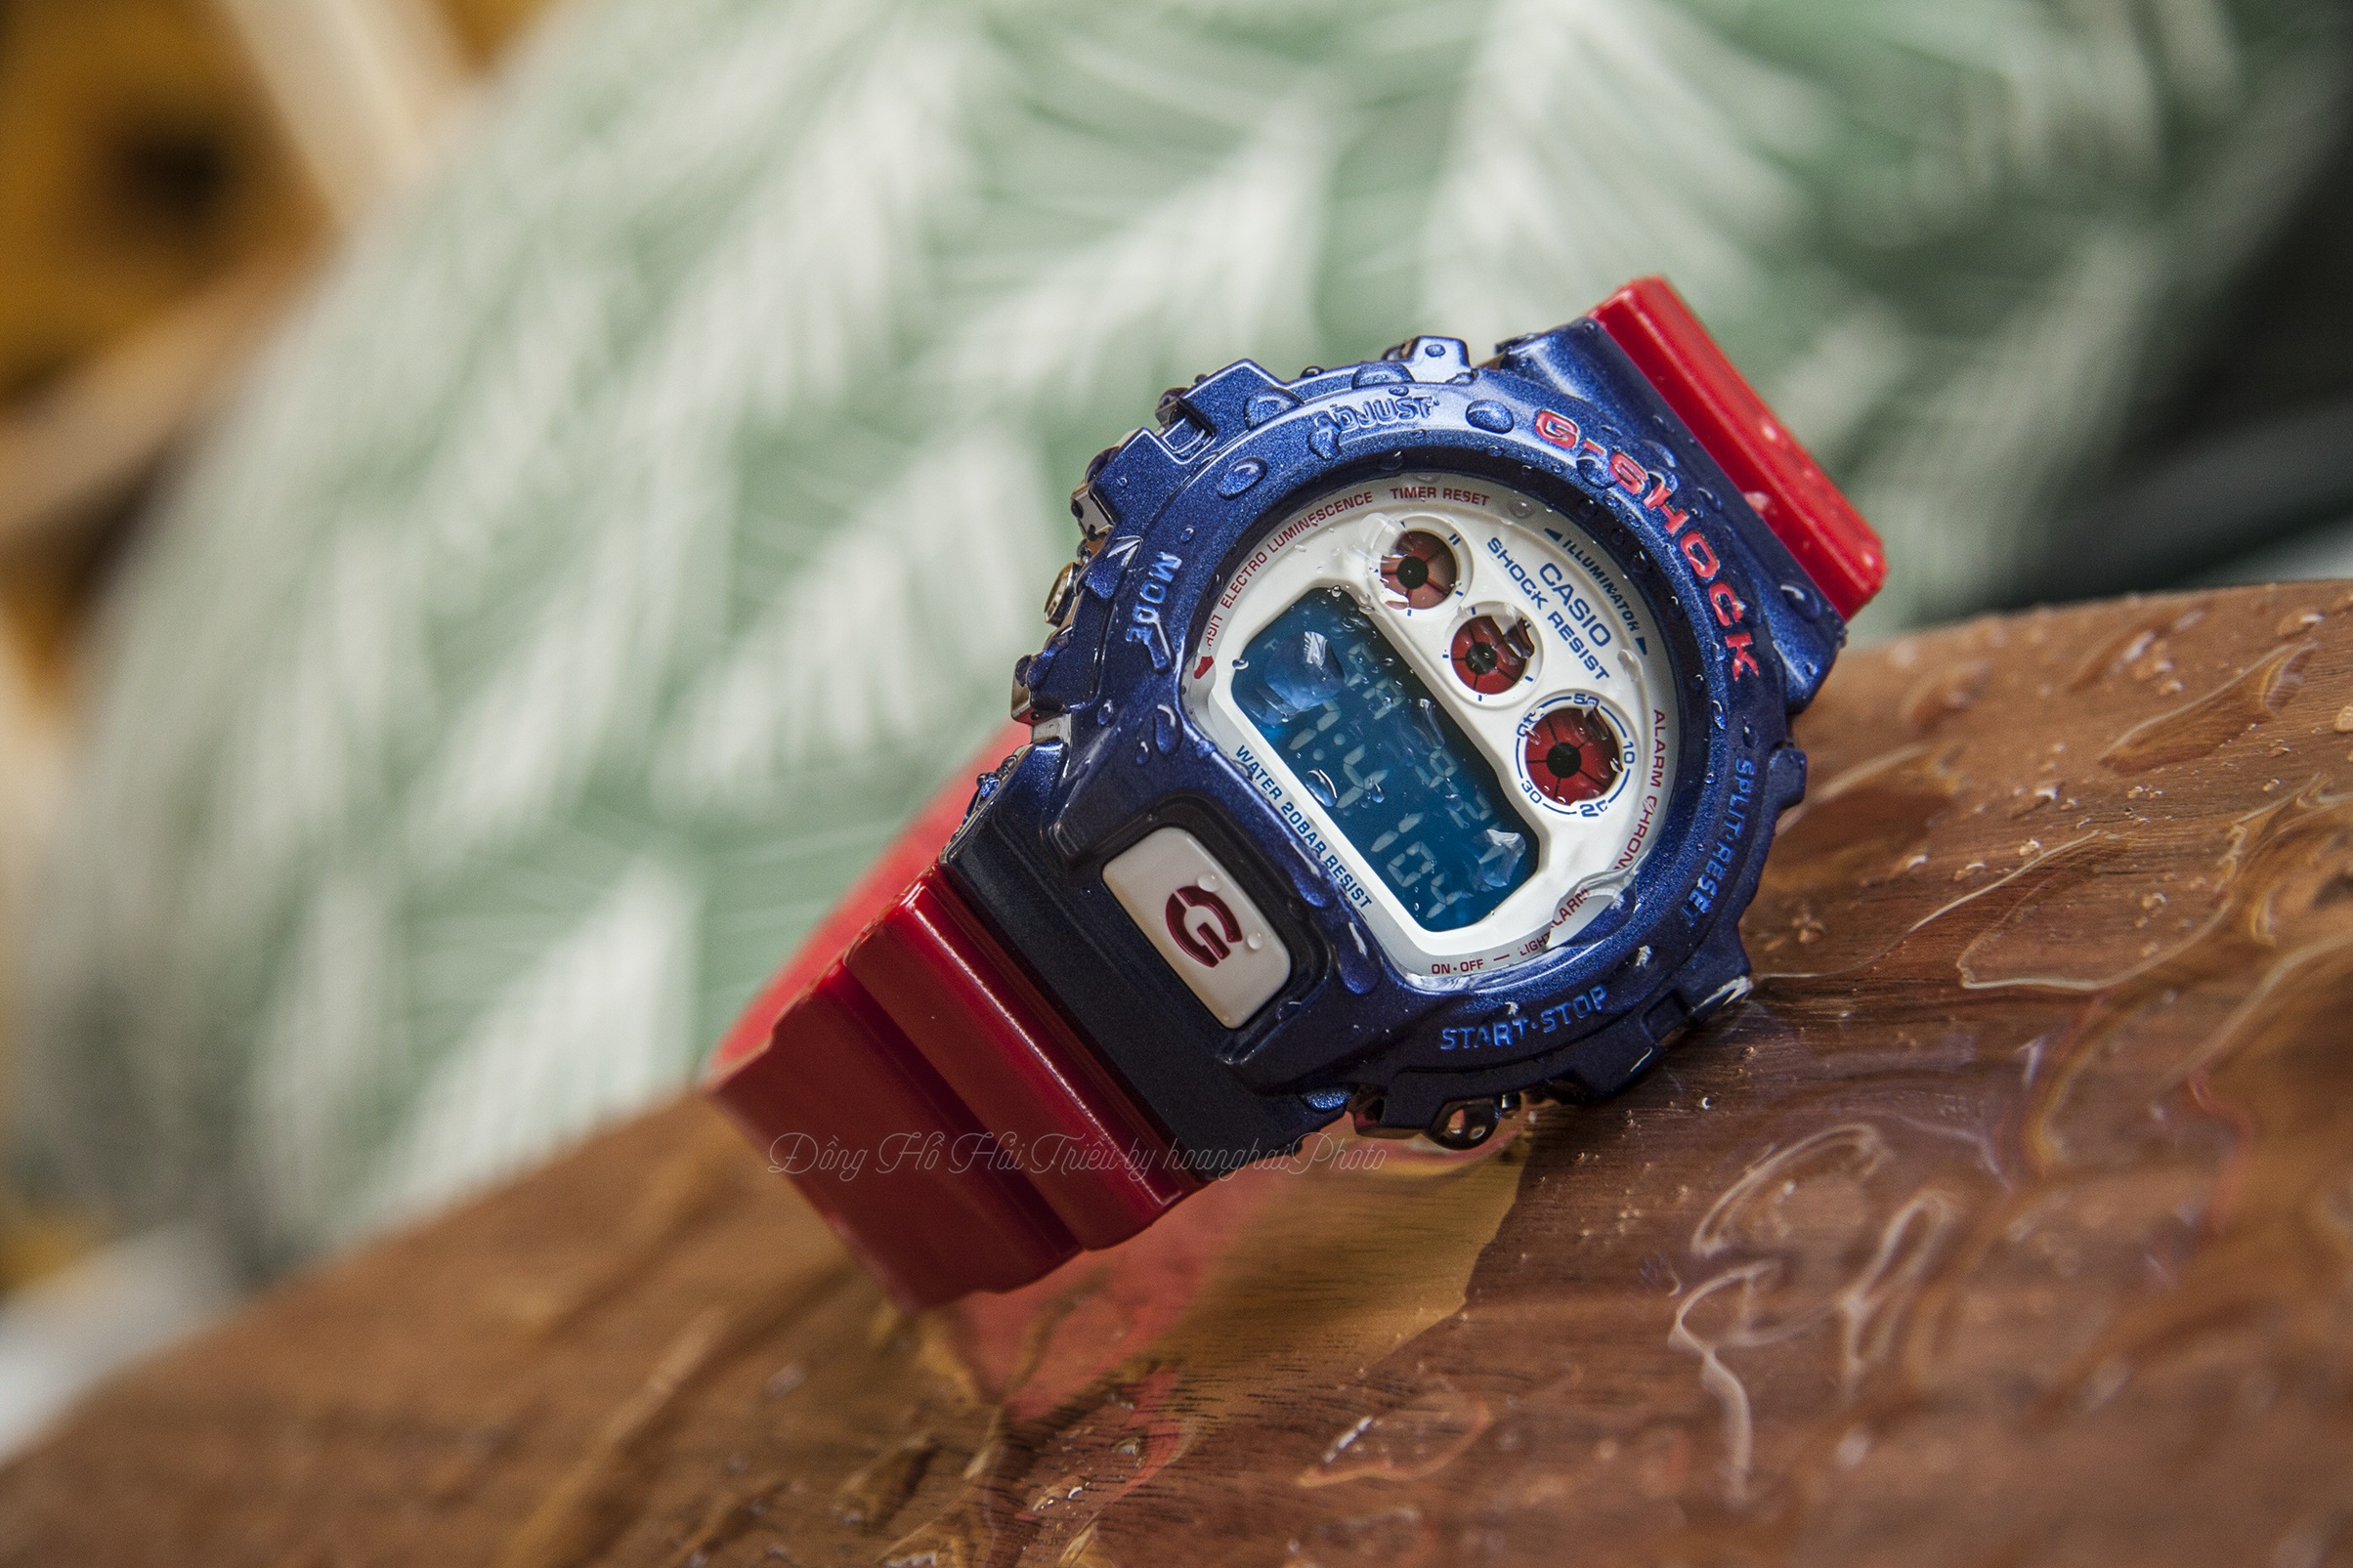 review tat tan tat thiet ke dong ho g shock dw 6900ac 2dr